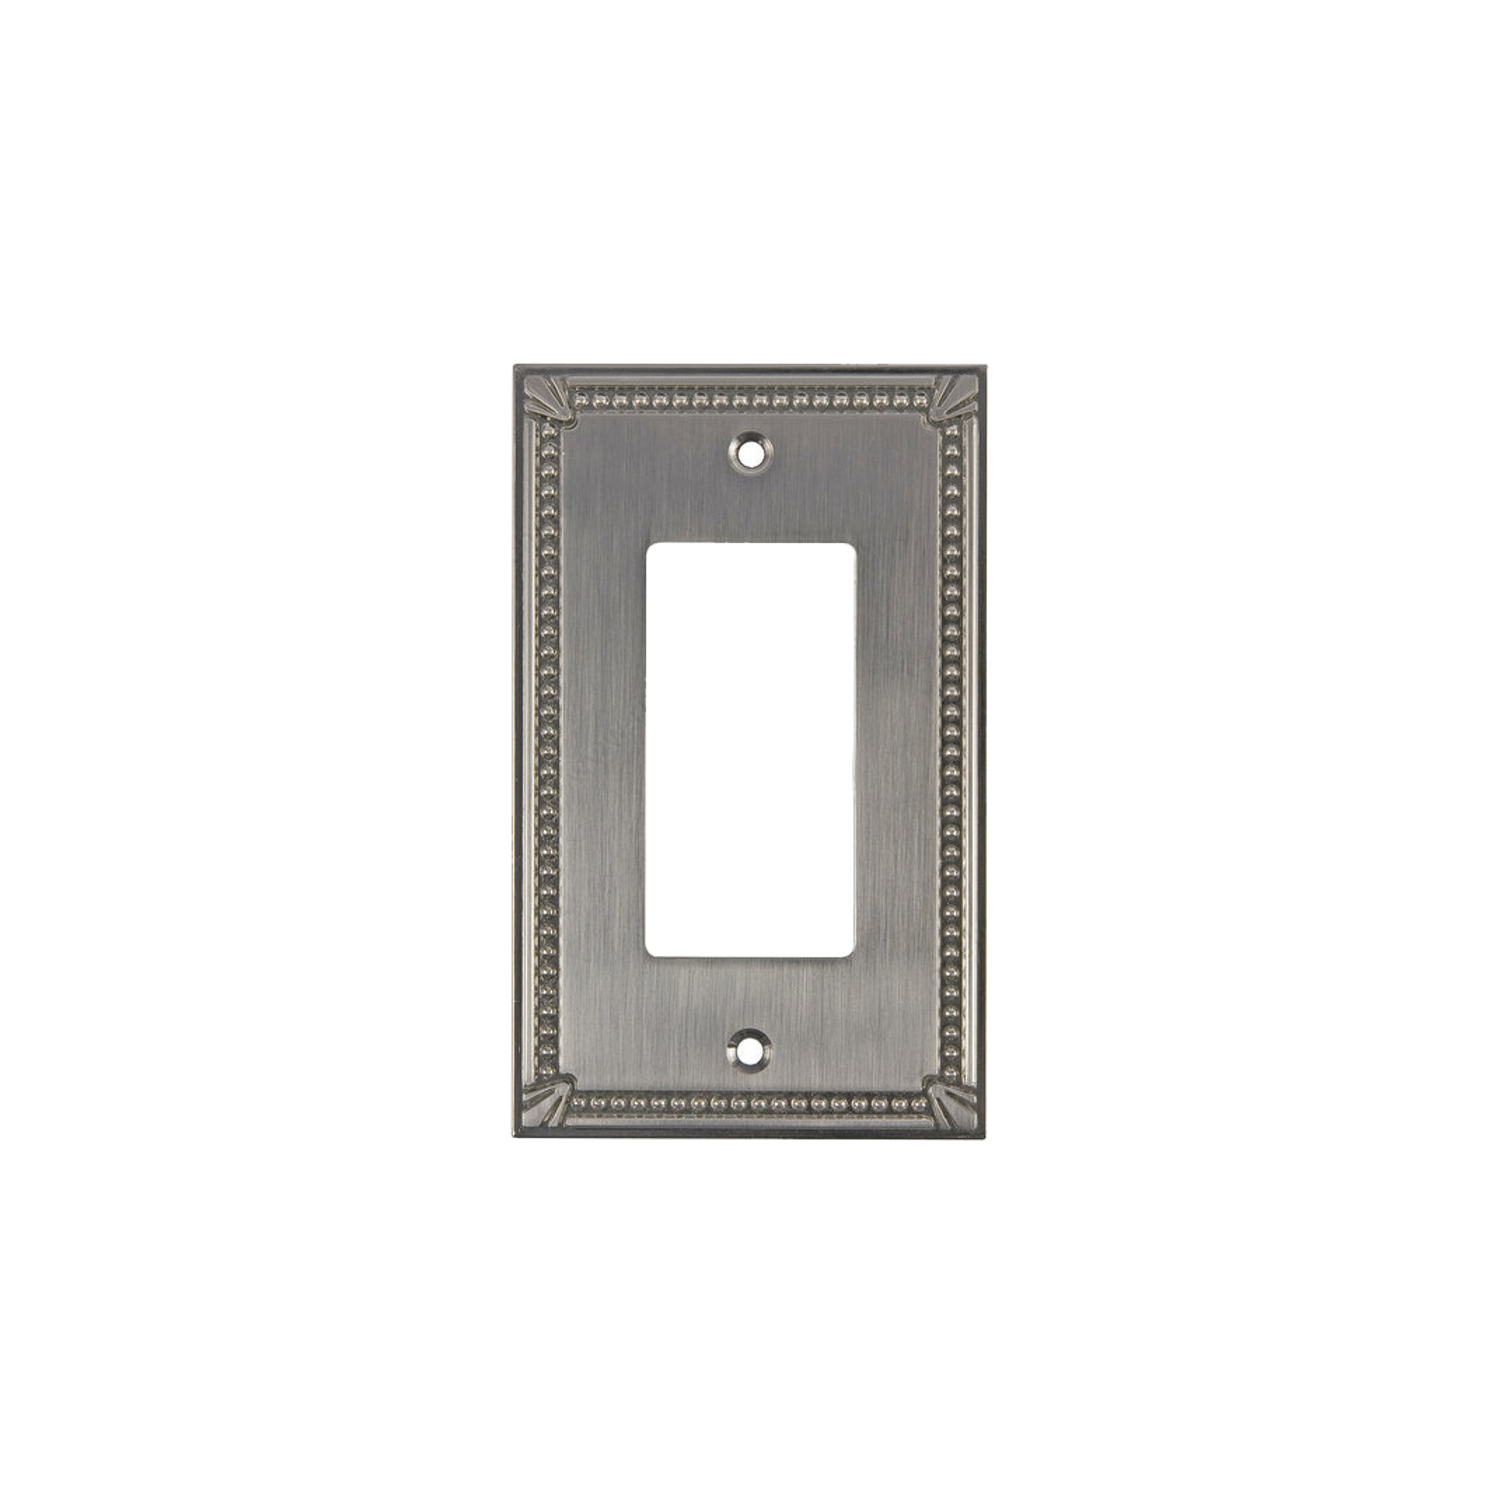 Picture of: Rok Hardware Traditional Decora Rocker Gfci Switch Plate